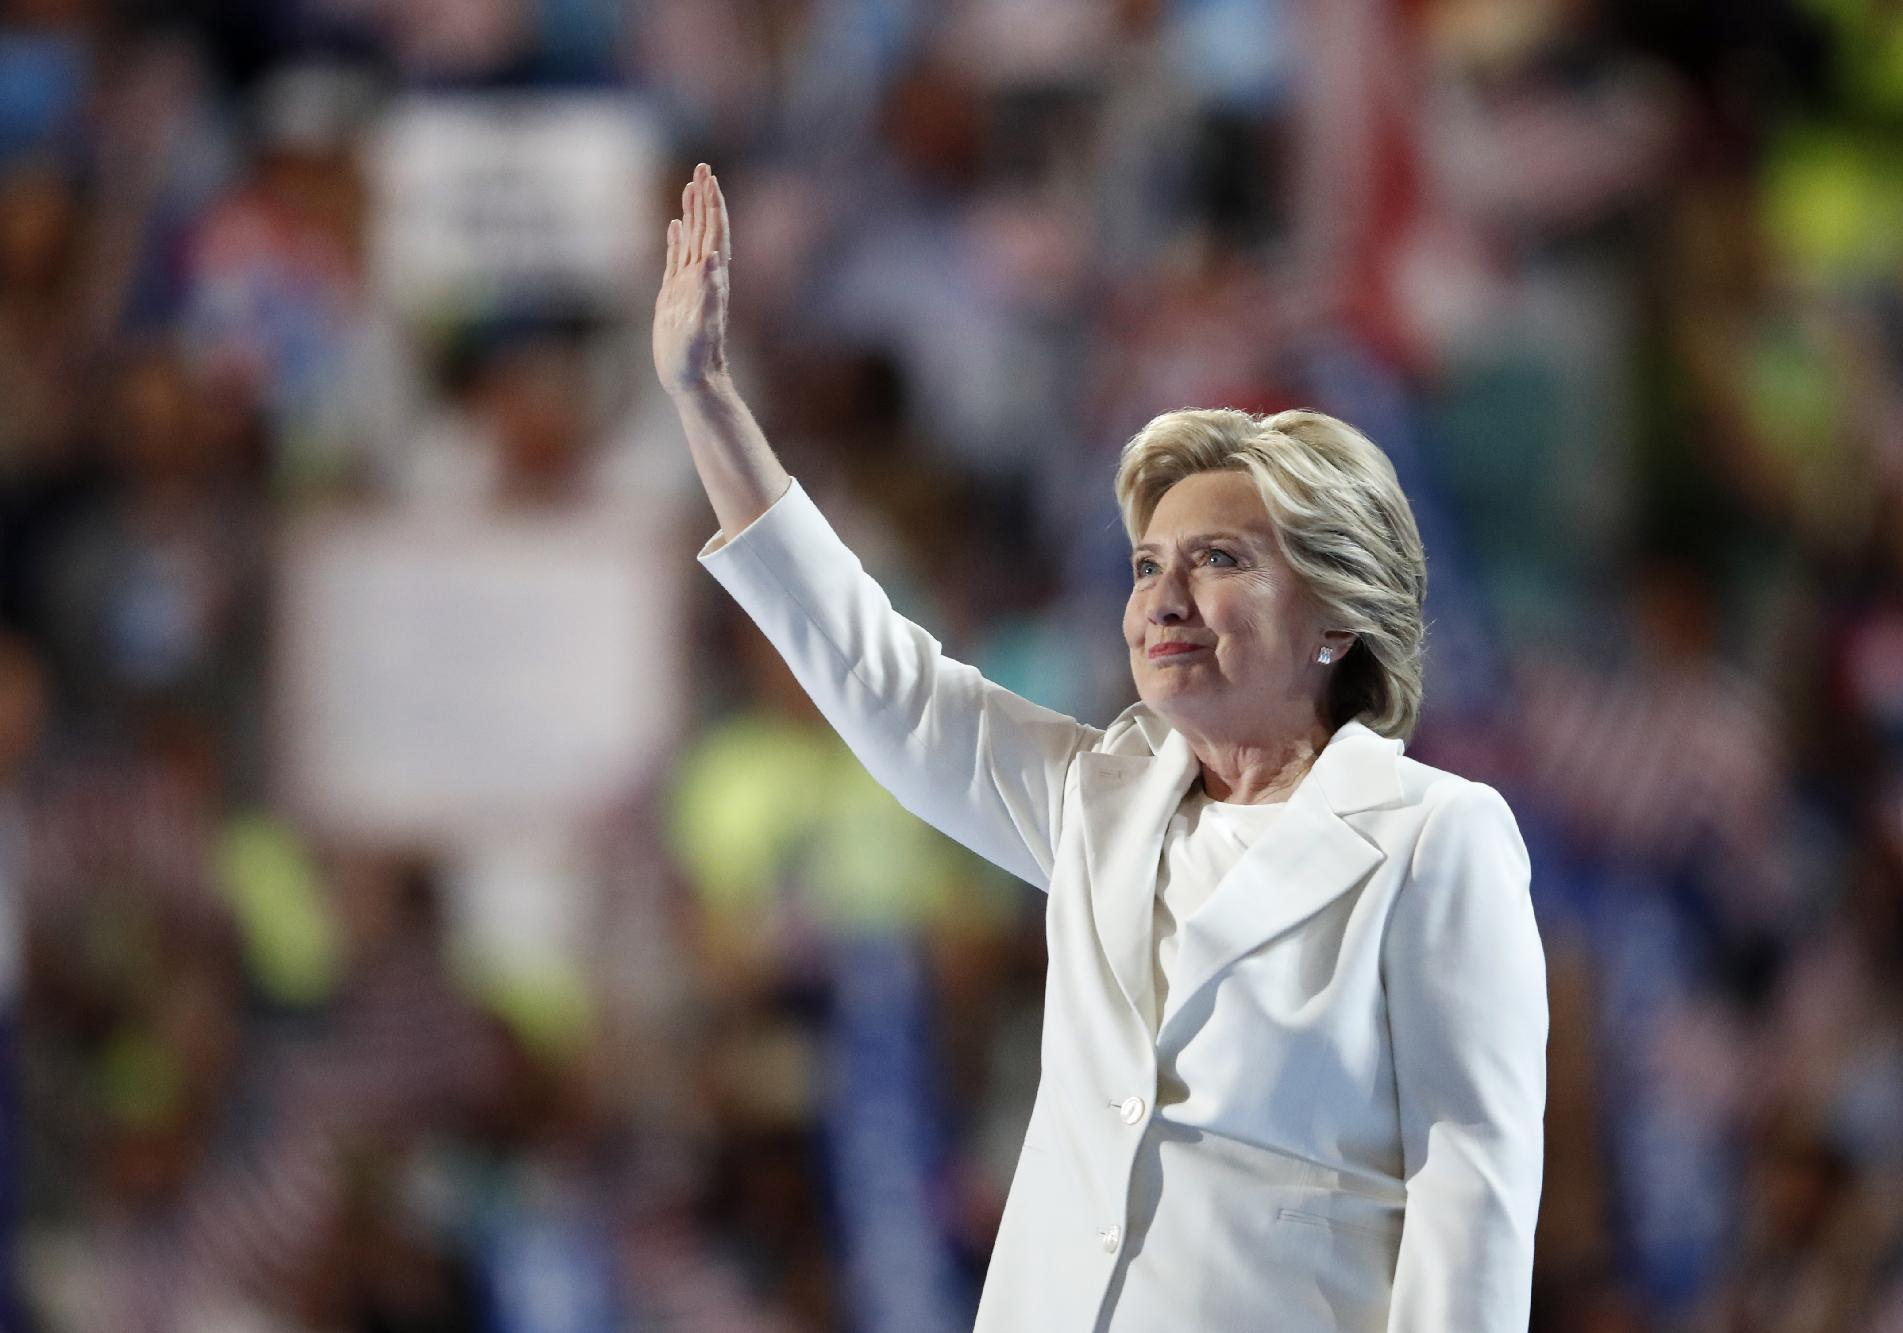 AP FACT CHECK: Misfires in Hillary Clinton's speech